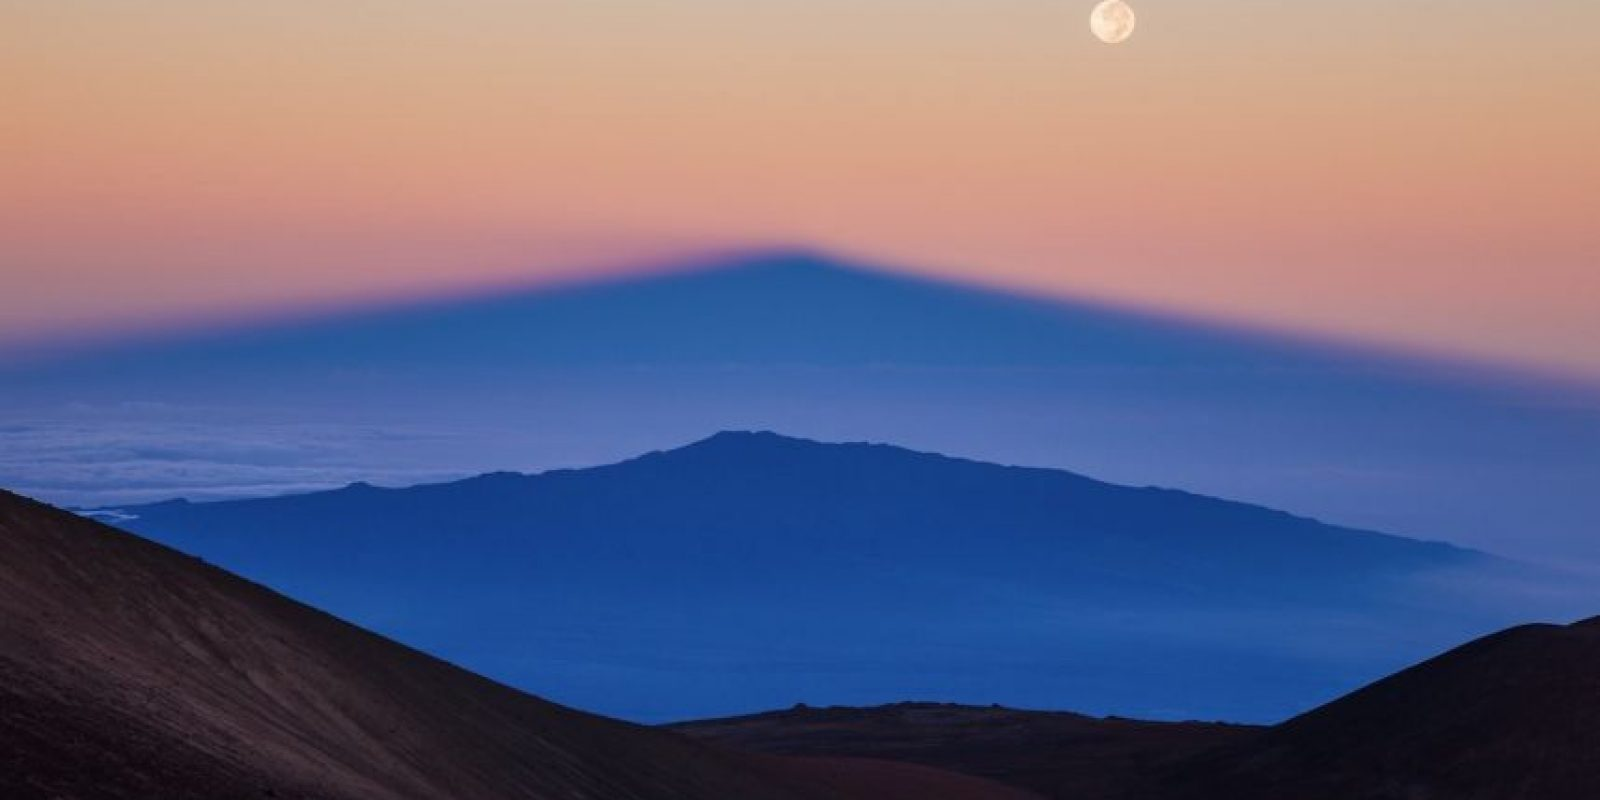 Parallel Mountains Foto:Sean Goebel – Insight Astronomy Photographer of the Year 2016